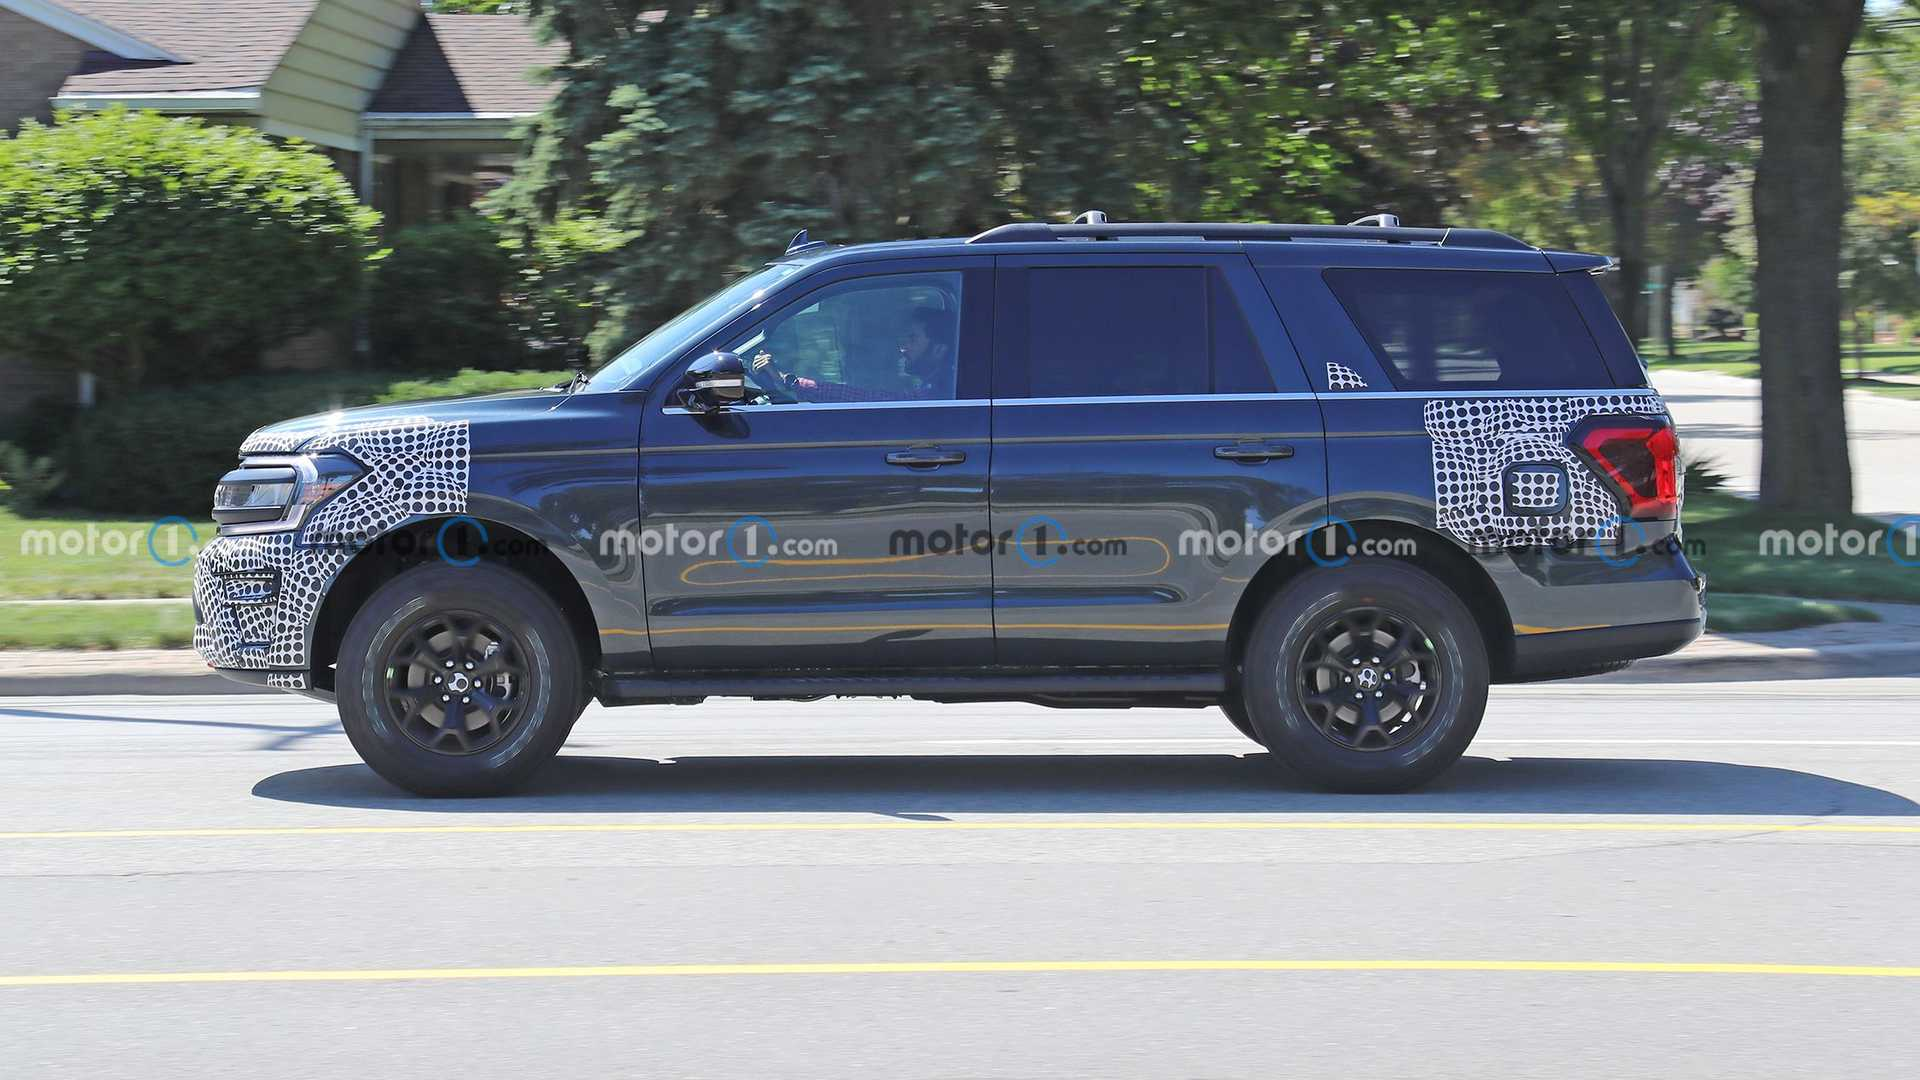 https://cdn.motor1.com/images/mgl/B743m/s6/2022-ford-expedition-timberline-new-spy-photo.jpg